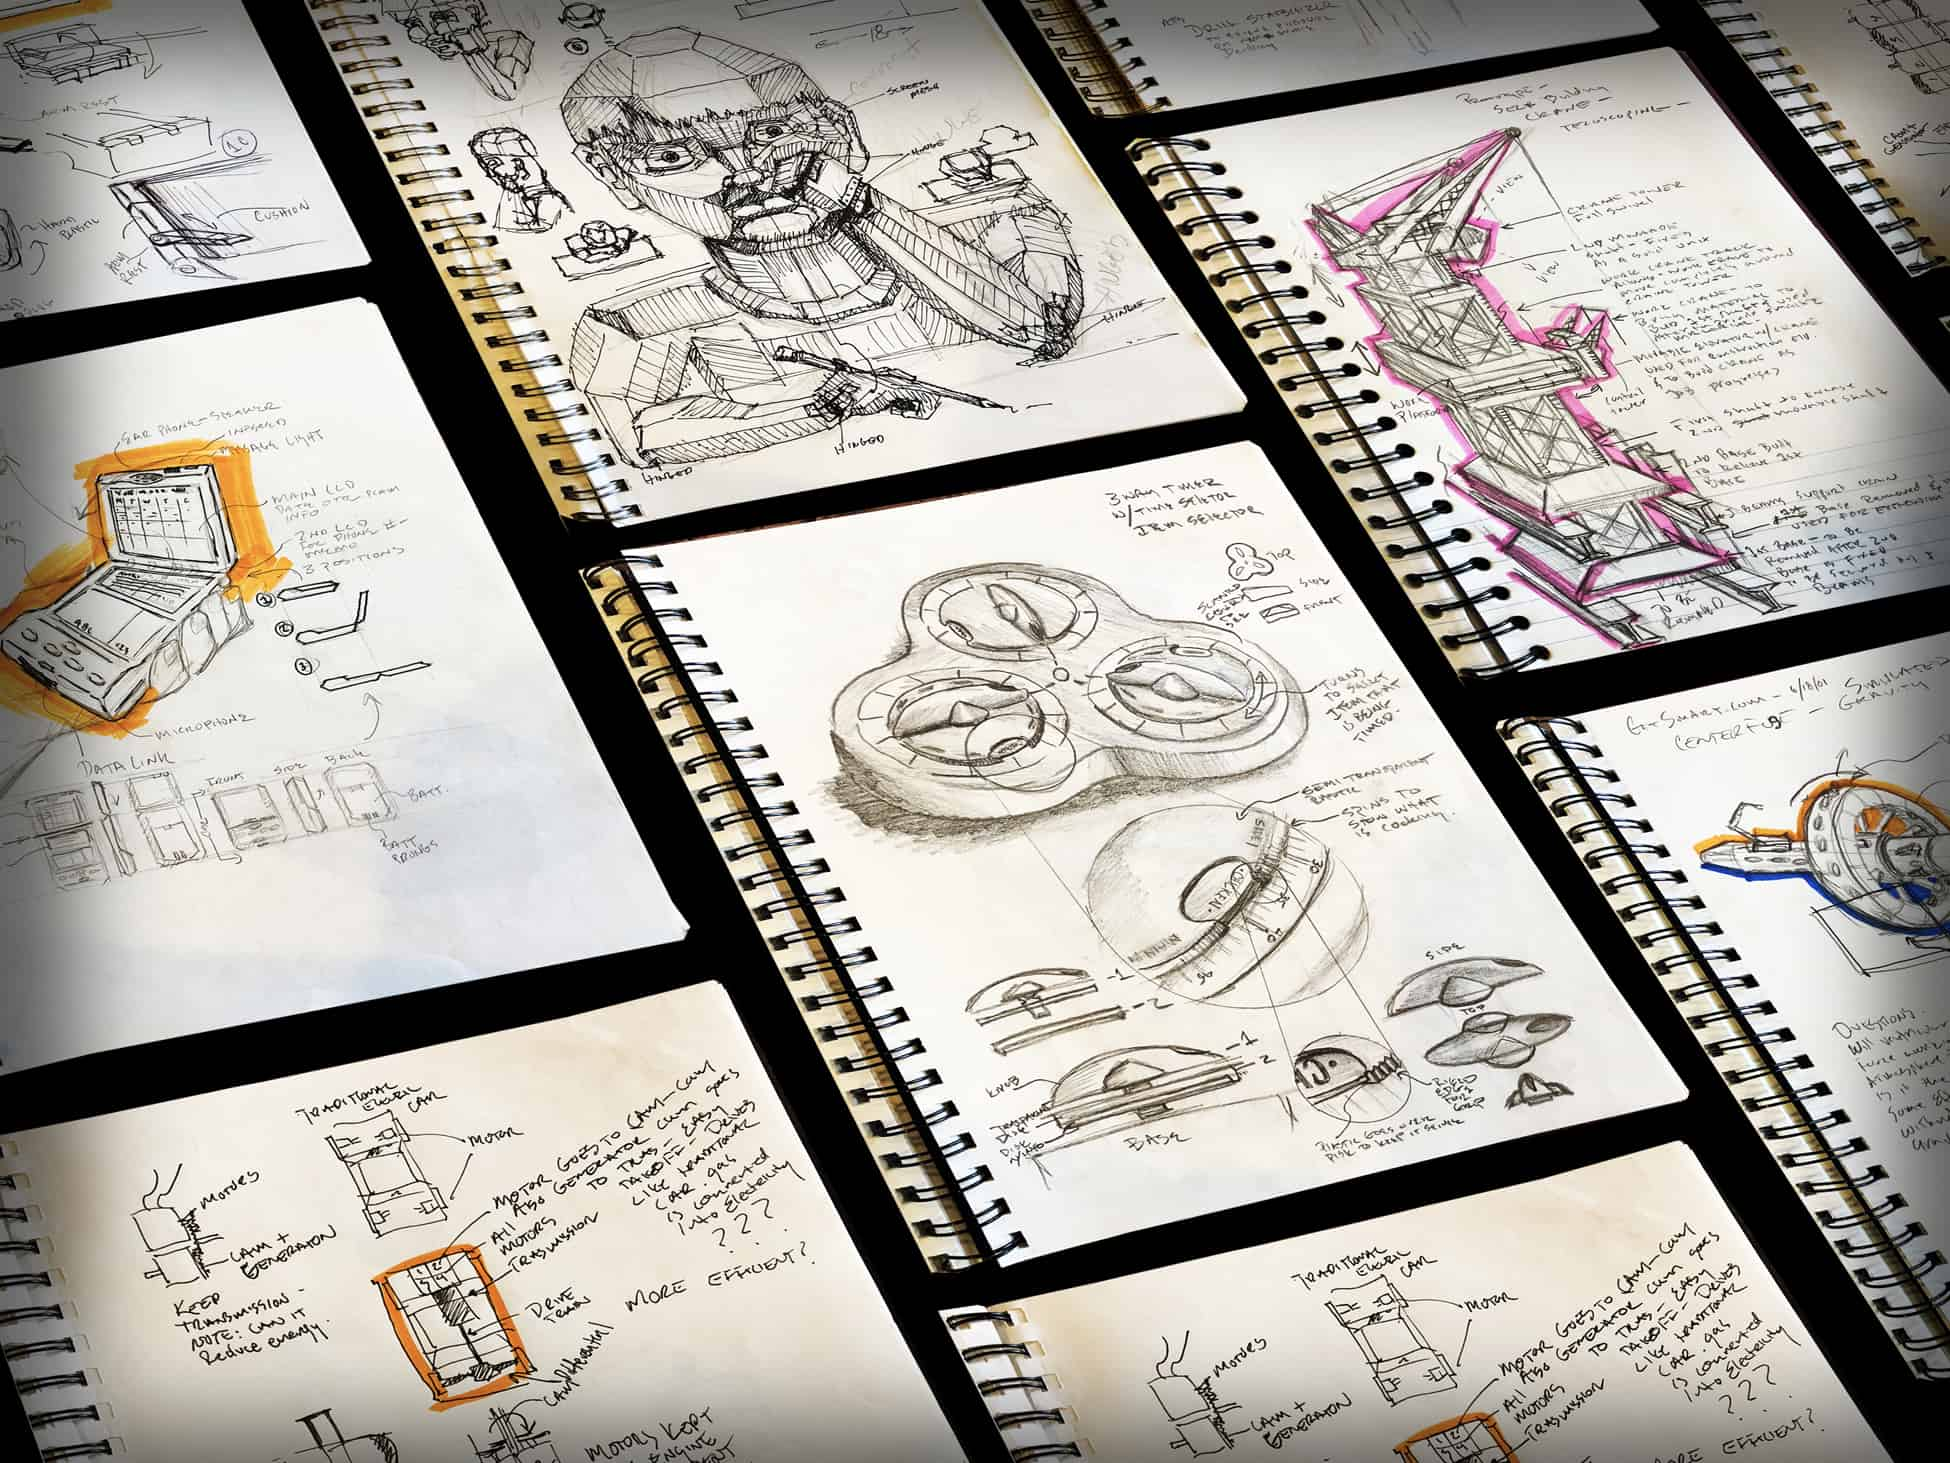 Creative Sketchbook Front Cover Ideas